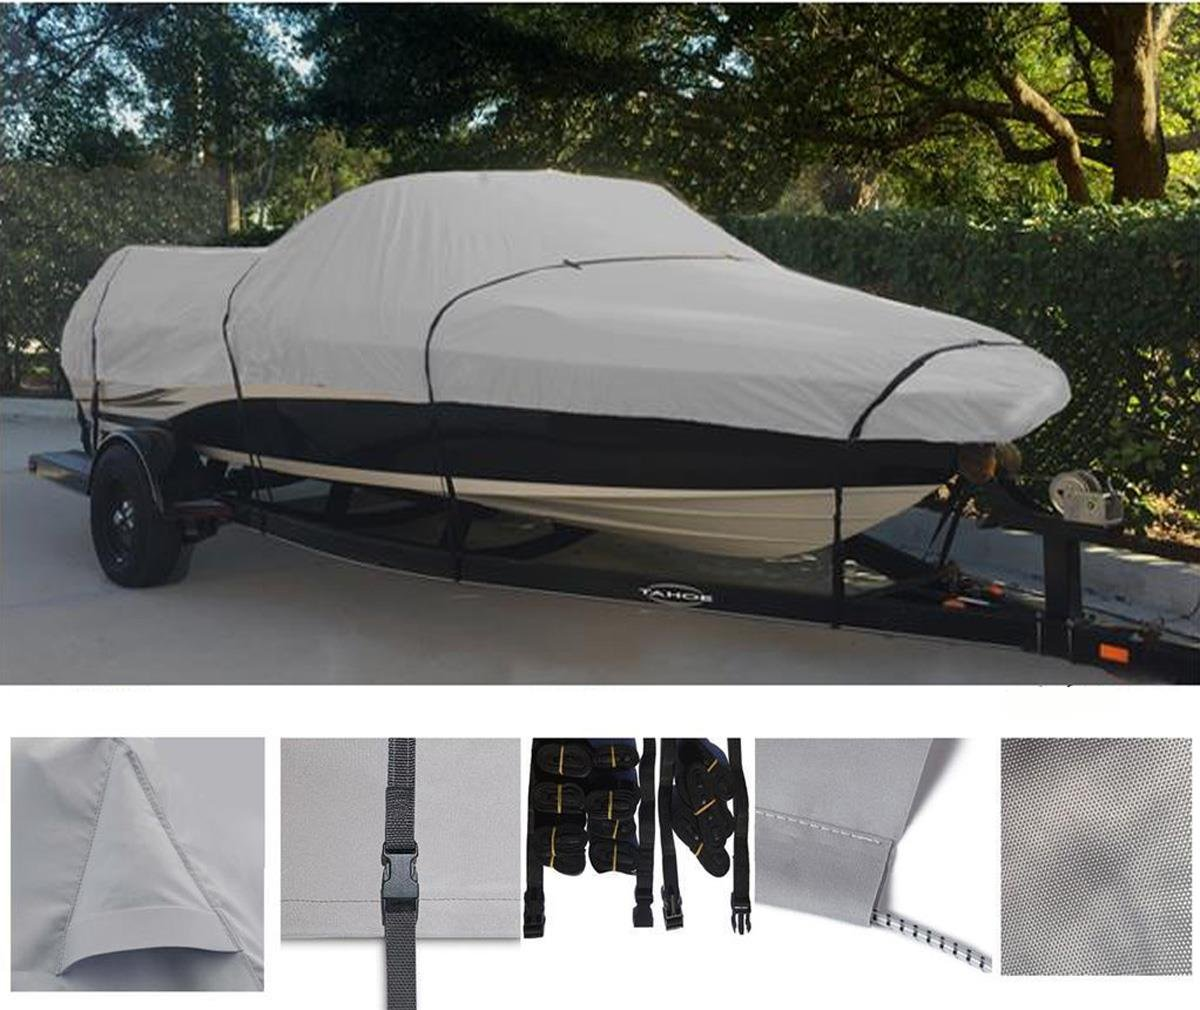 GREY, STORAGE, TRAVEL, MOORING BOAT COVER FOR REGAL 2100 LSR I/O 1997 1998 1999 2000 by SBU